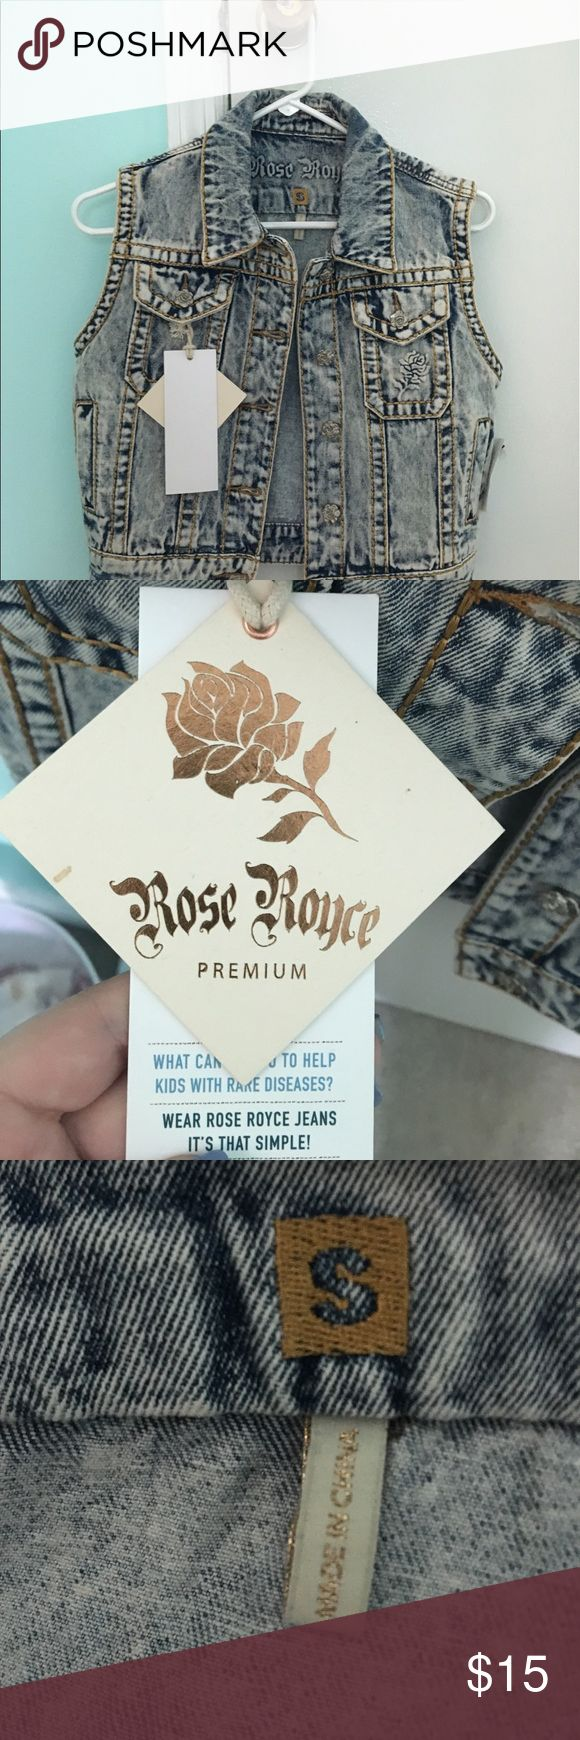 Rose Royce premium jean jacket This is a real rose Royce Jean jacket with rose detailing on the pockets and metal rose buttons rose royce  Other